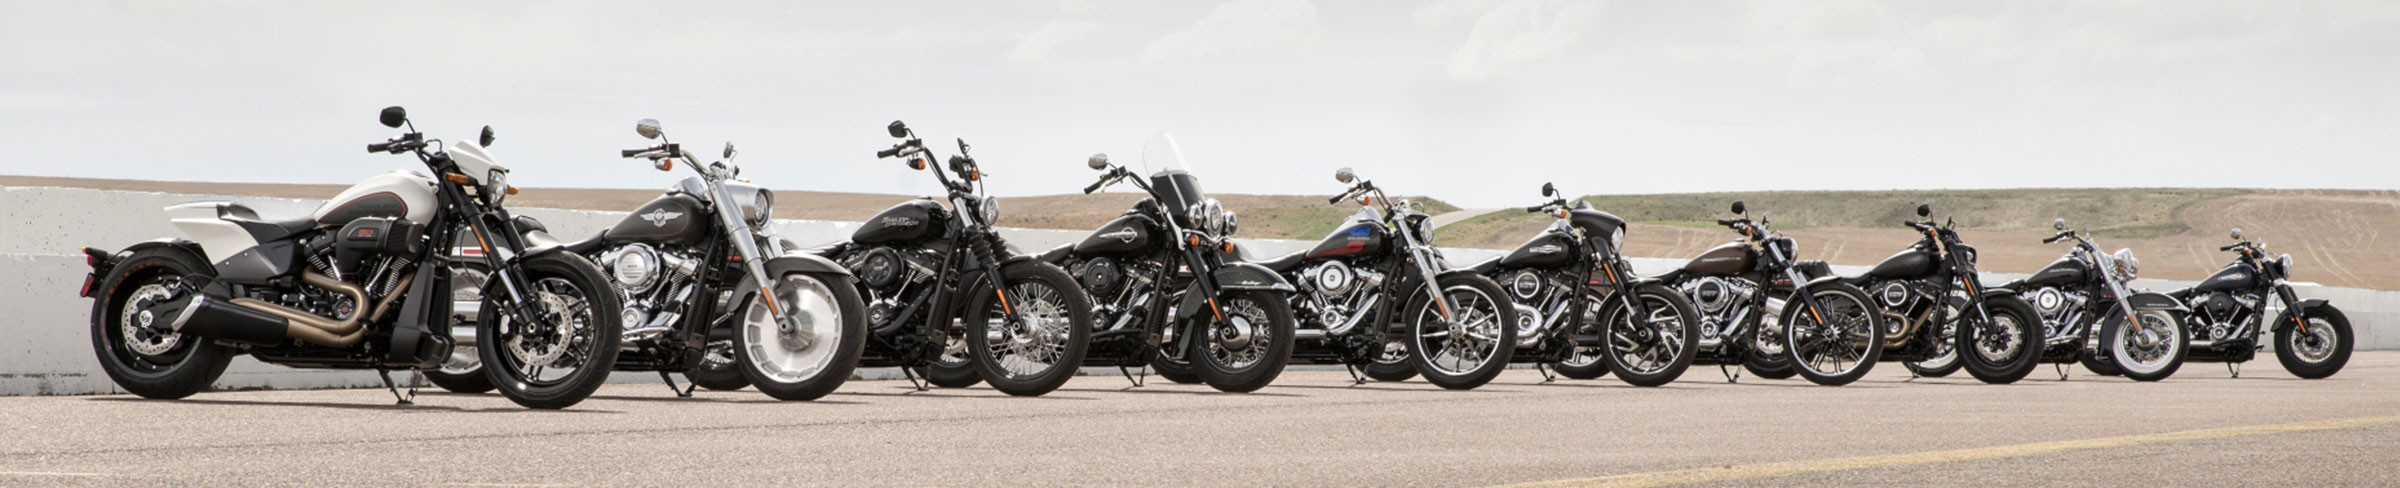 New Harley Davidson Softail for sale near Joplin, MO